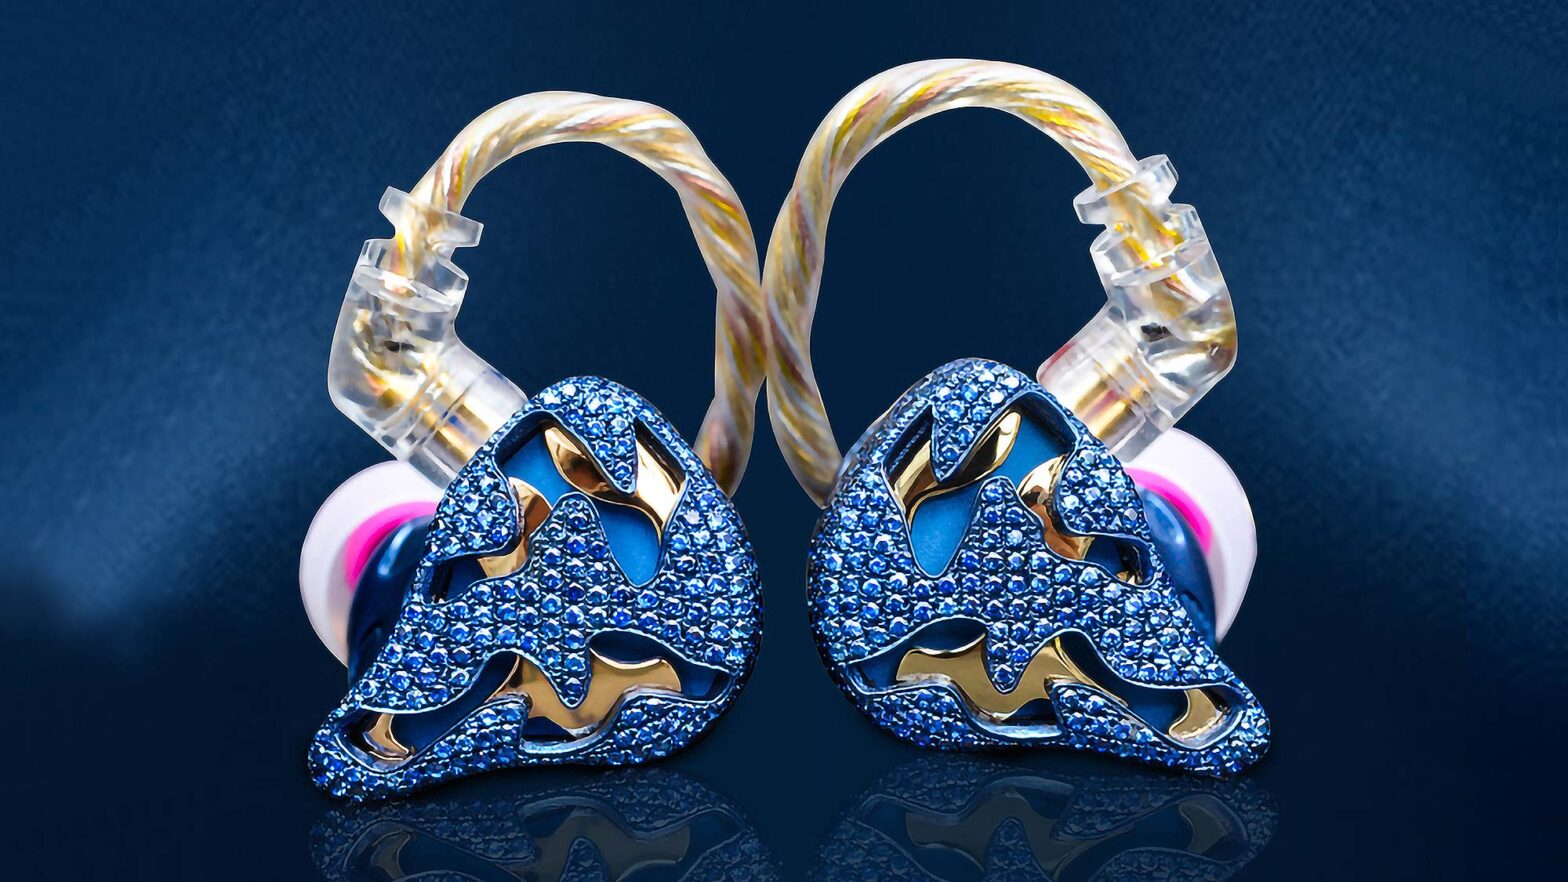 QDC Blue Dragon Luxury Jewelry Earphones